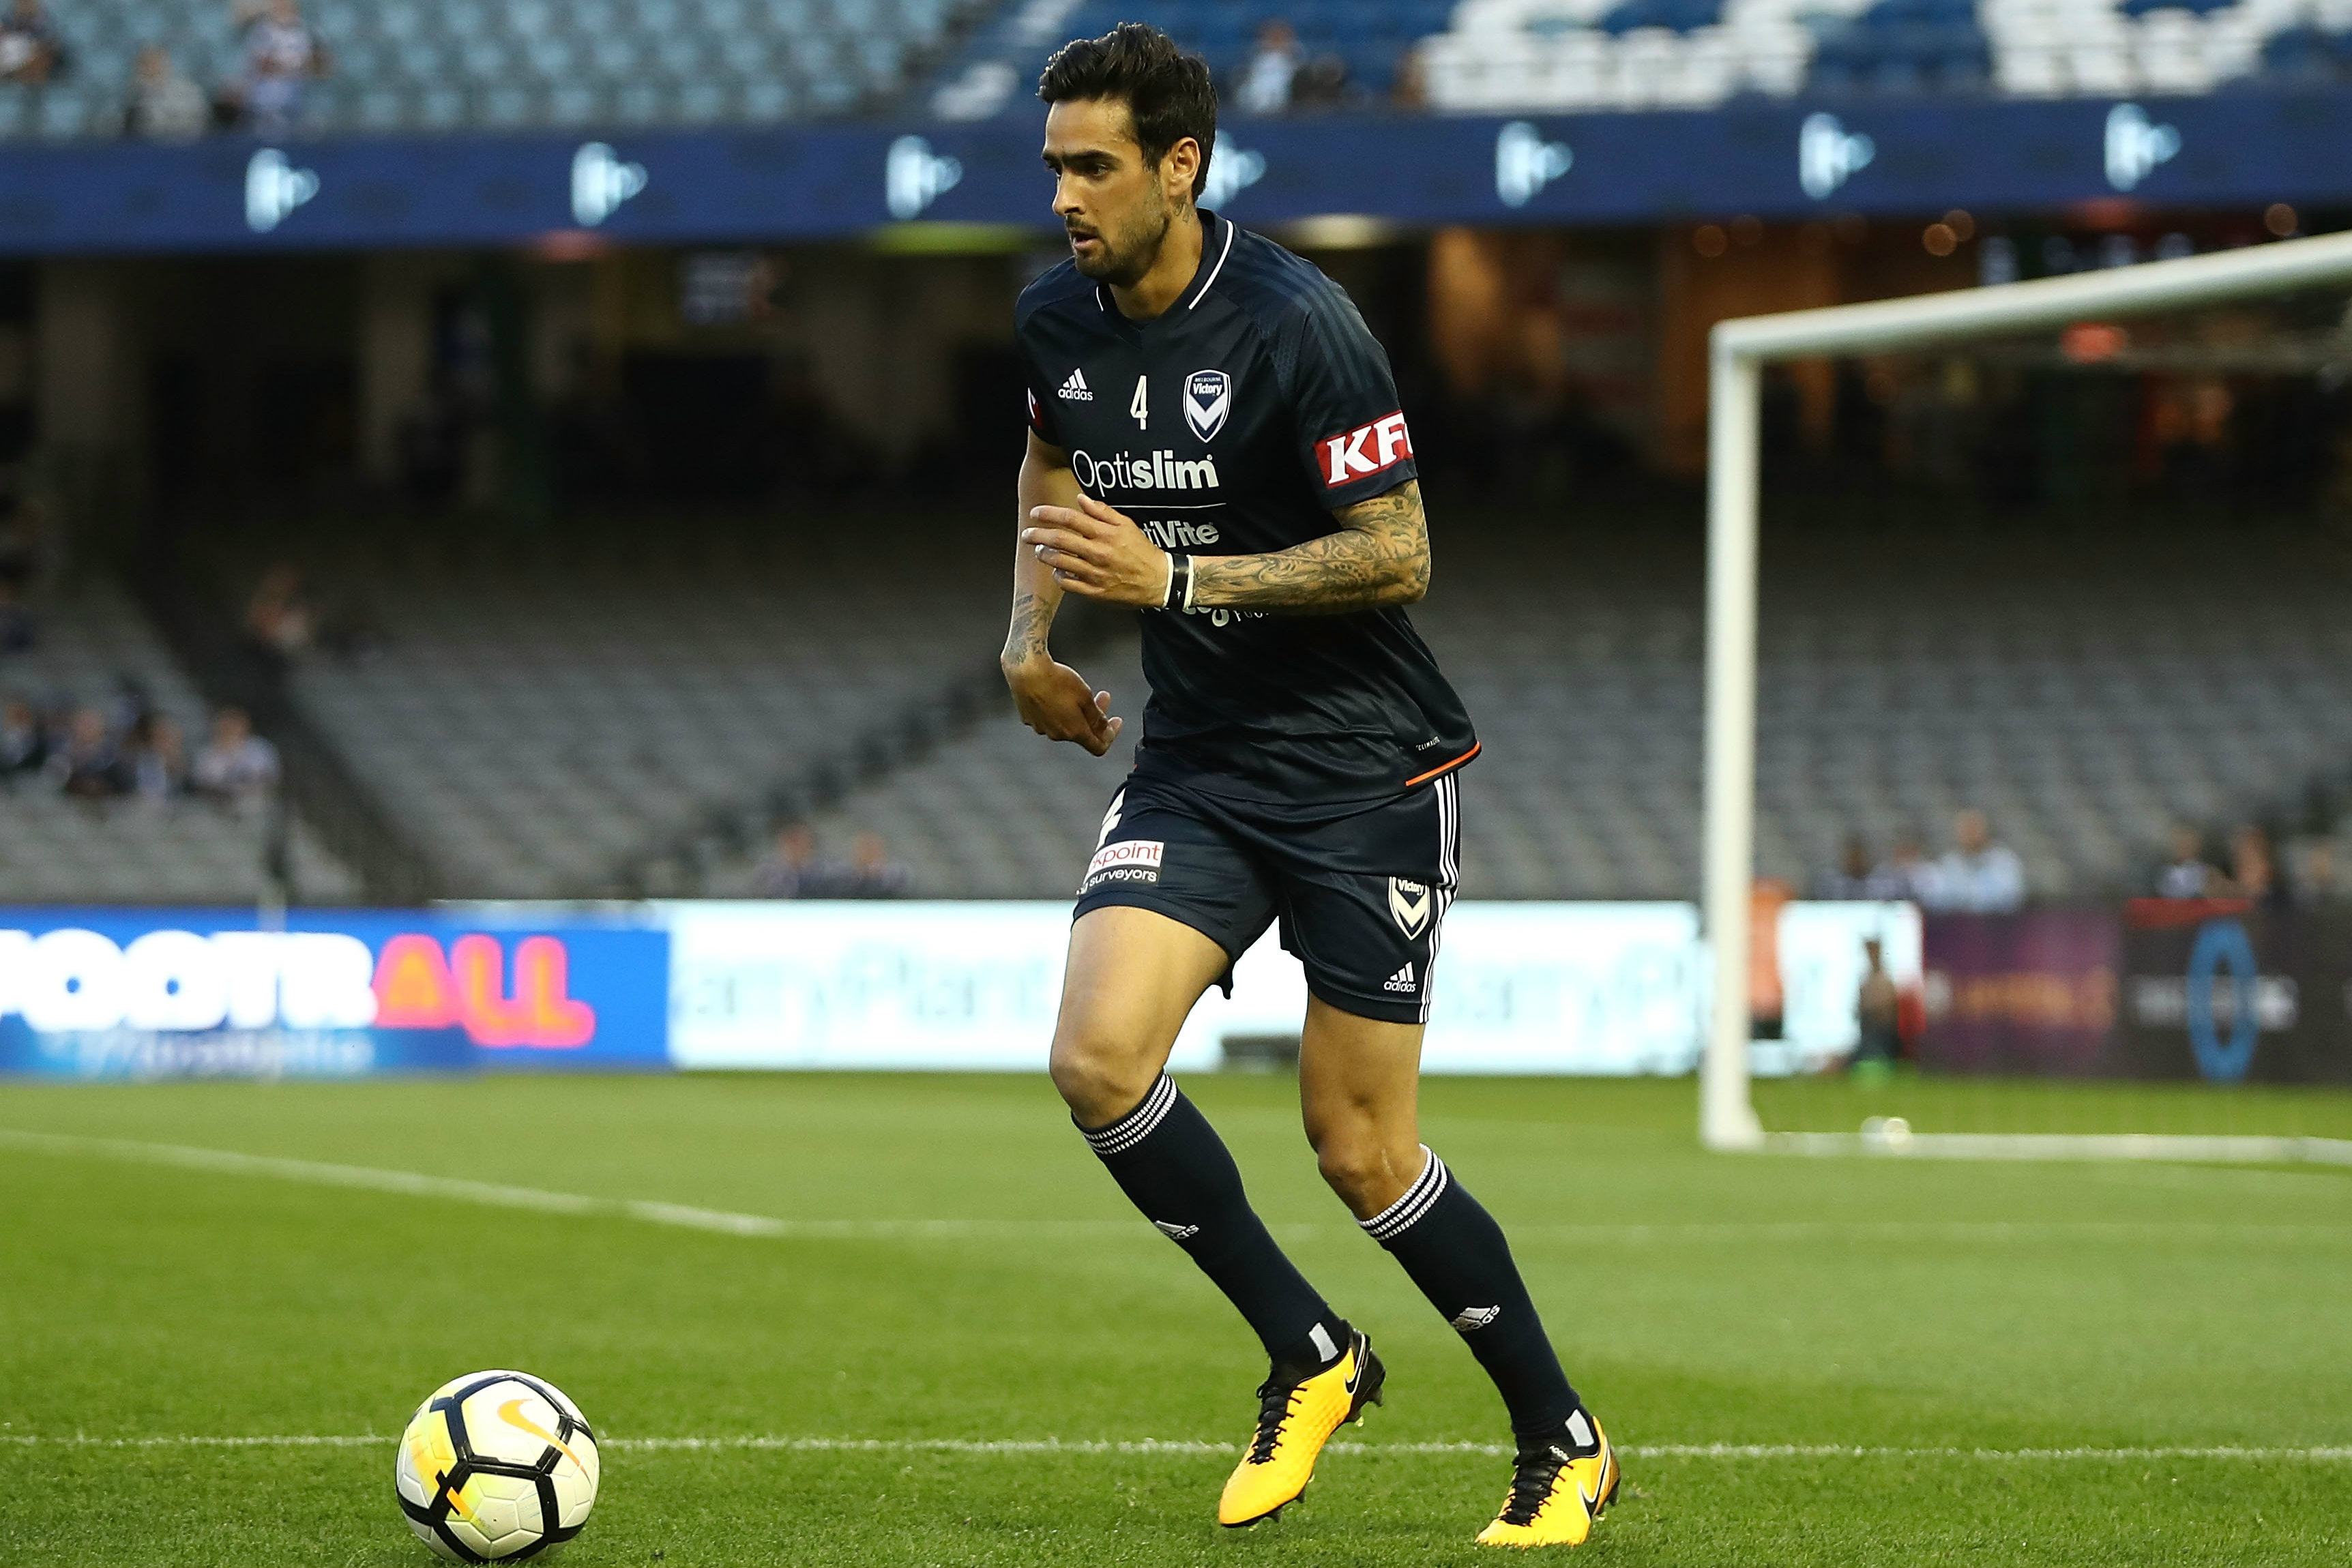 Rhys Williams' form and versatility could work in his favour.